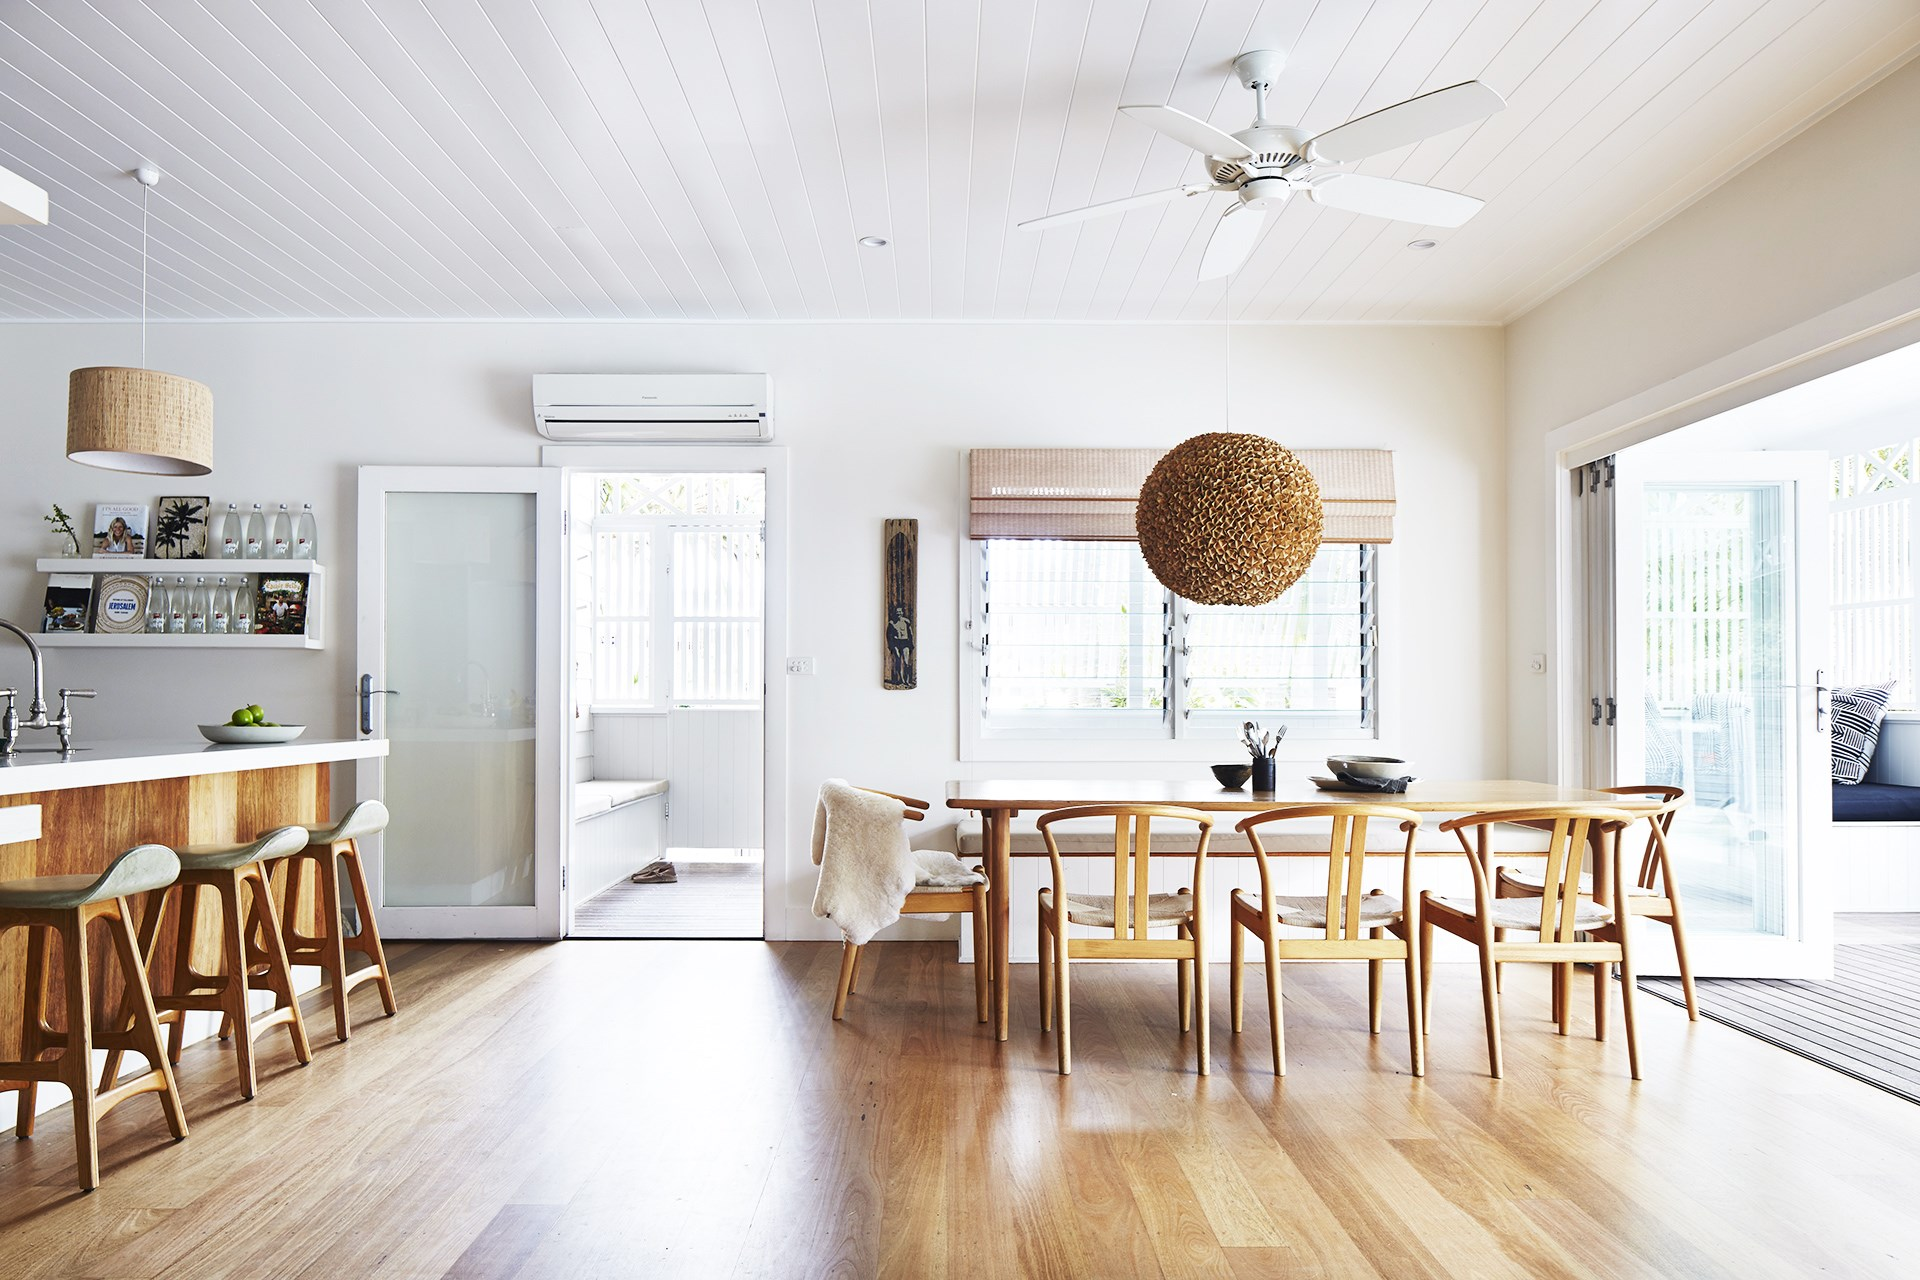 "Make the most of the structure of your home to allow for maximum airflow and plenty of natural light. Bi-folding glass doors, like those in this open-plan [Byron Bay beach house](http://www.homestolove.com.au/gallery-kimberly-and-stephens-byron-bay-beach-house-1660|target=""_blank""), allow you bring the outdoors in, promoting relaxed living and natural flow."